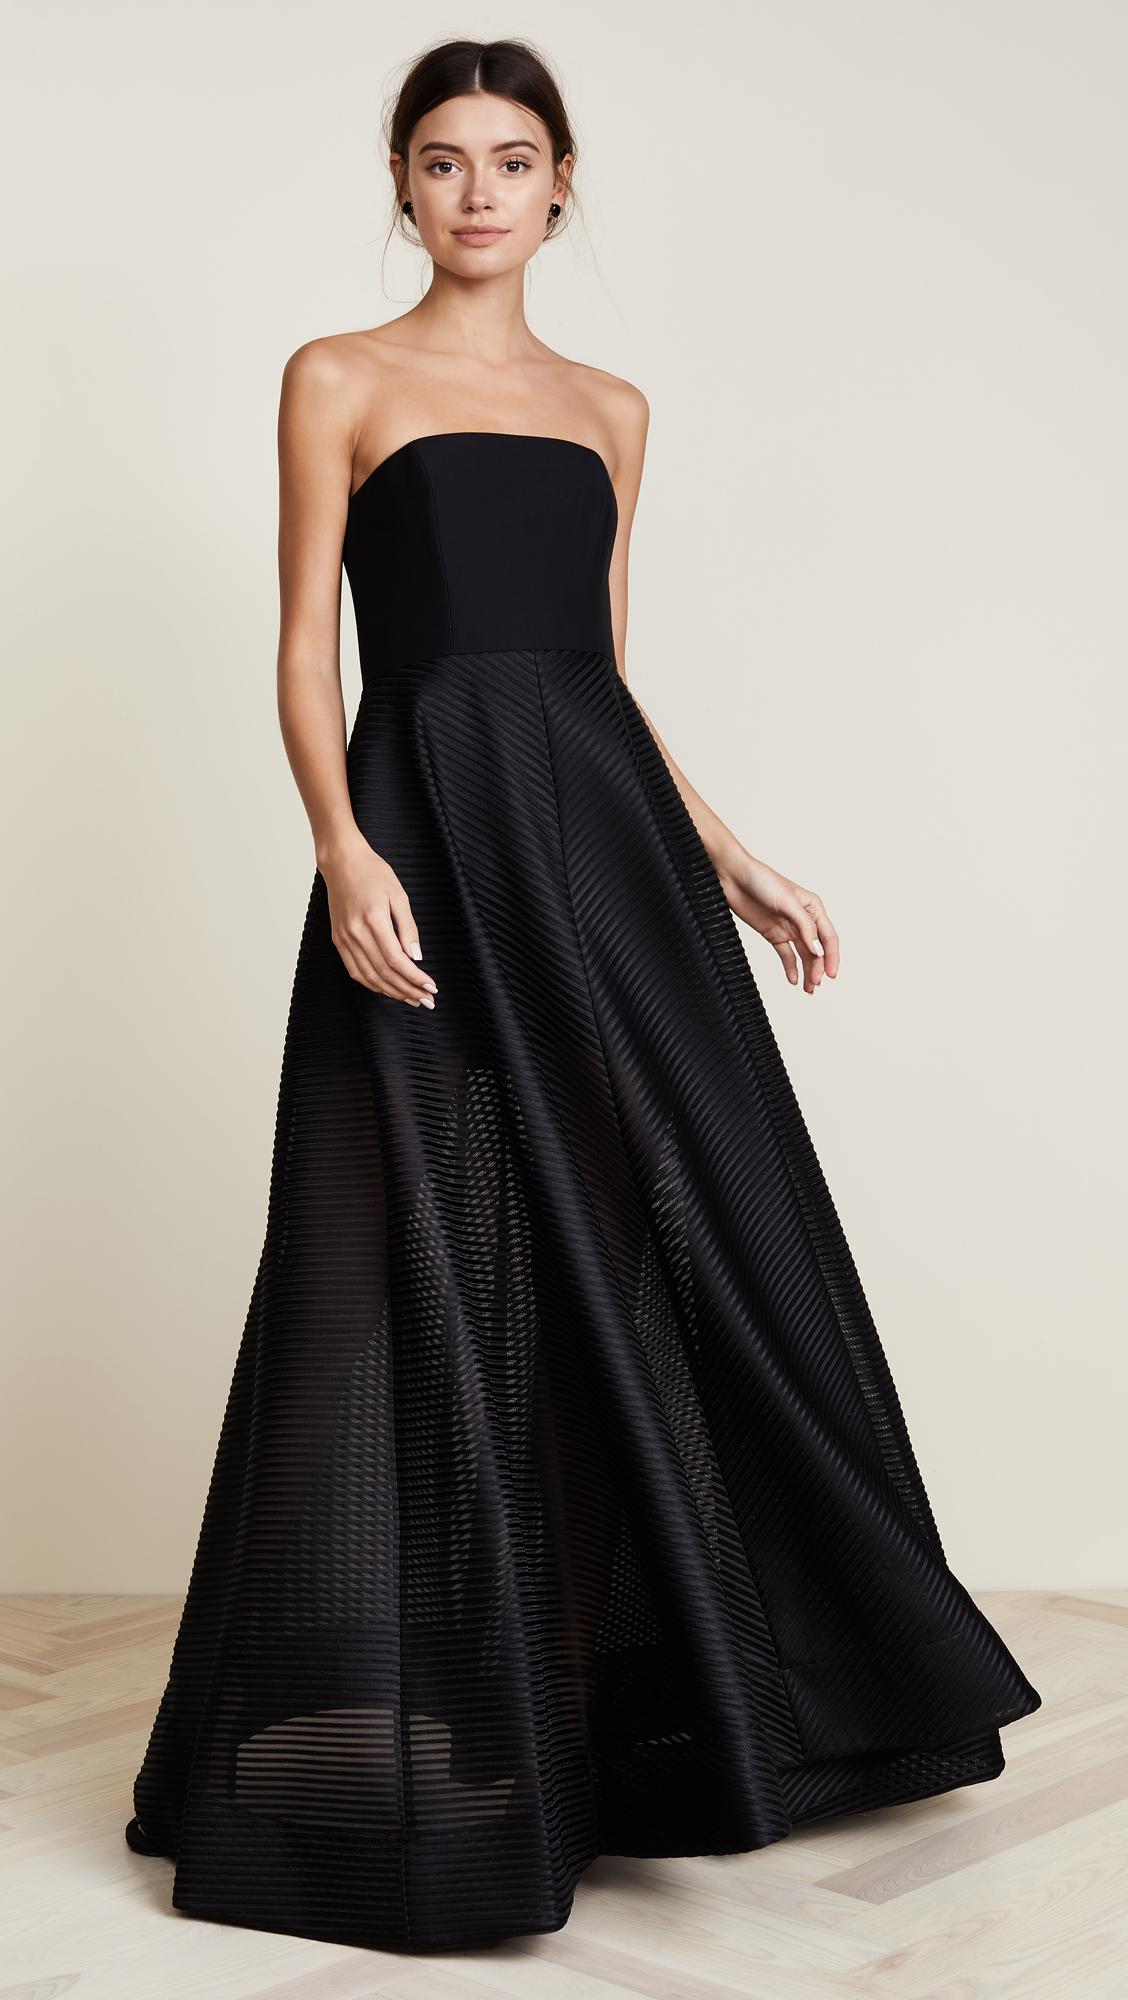 Halston Strapless Gown With Sheer Striped Skirt in Black ...